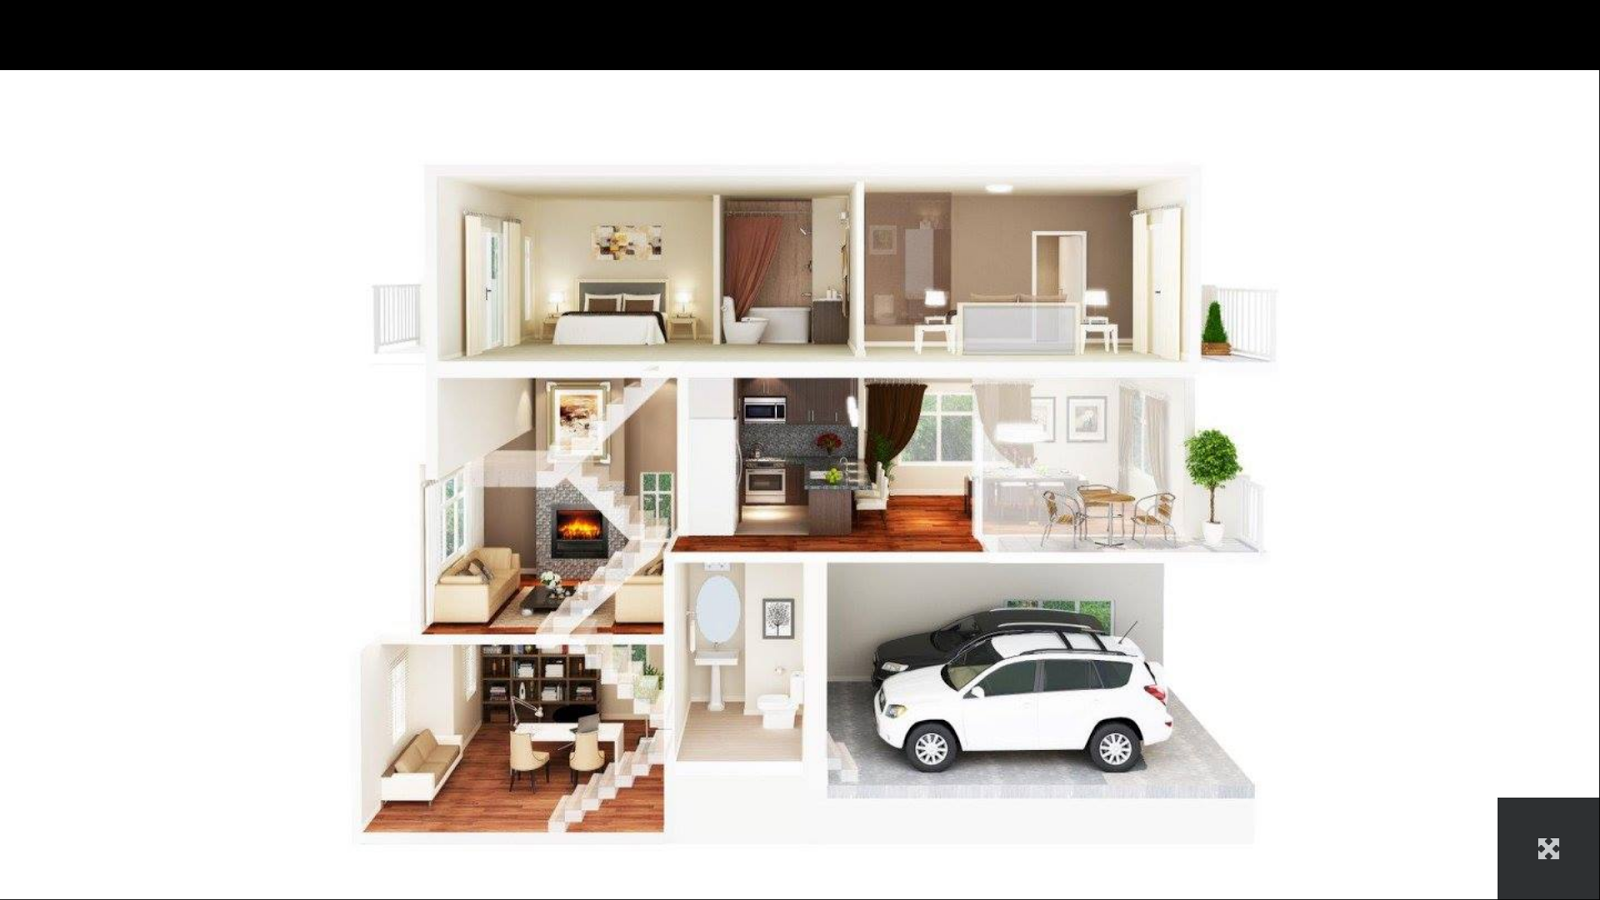 3d house plans 1 2 apk download android lifestyle apps for Plan 3d